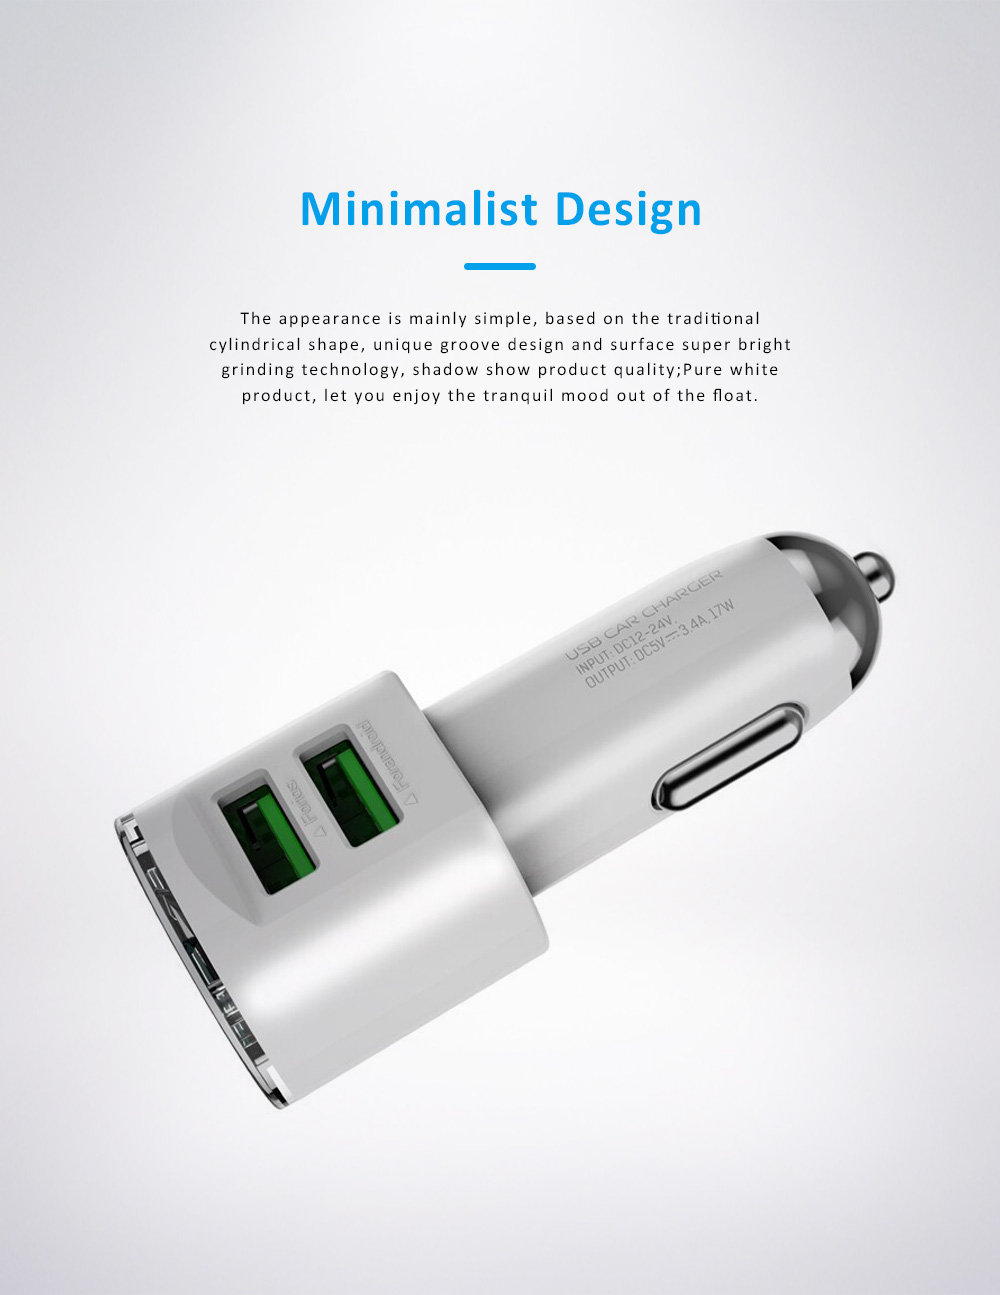 Dual USB 3.4A Zinc Alloy Mobile Phone Tablet Data Cable Car Charger with Intelligent Protection 4